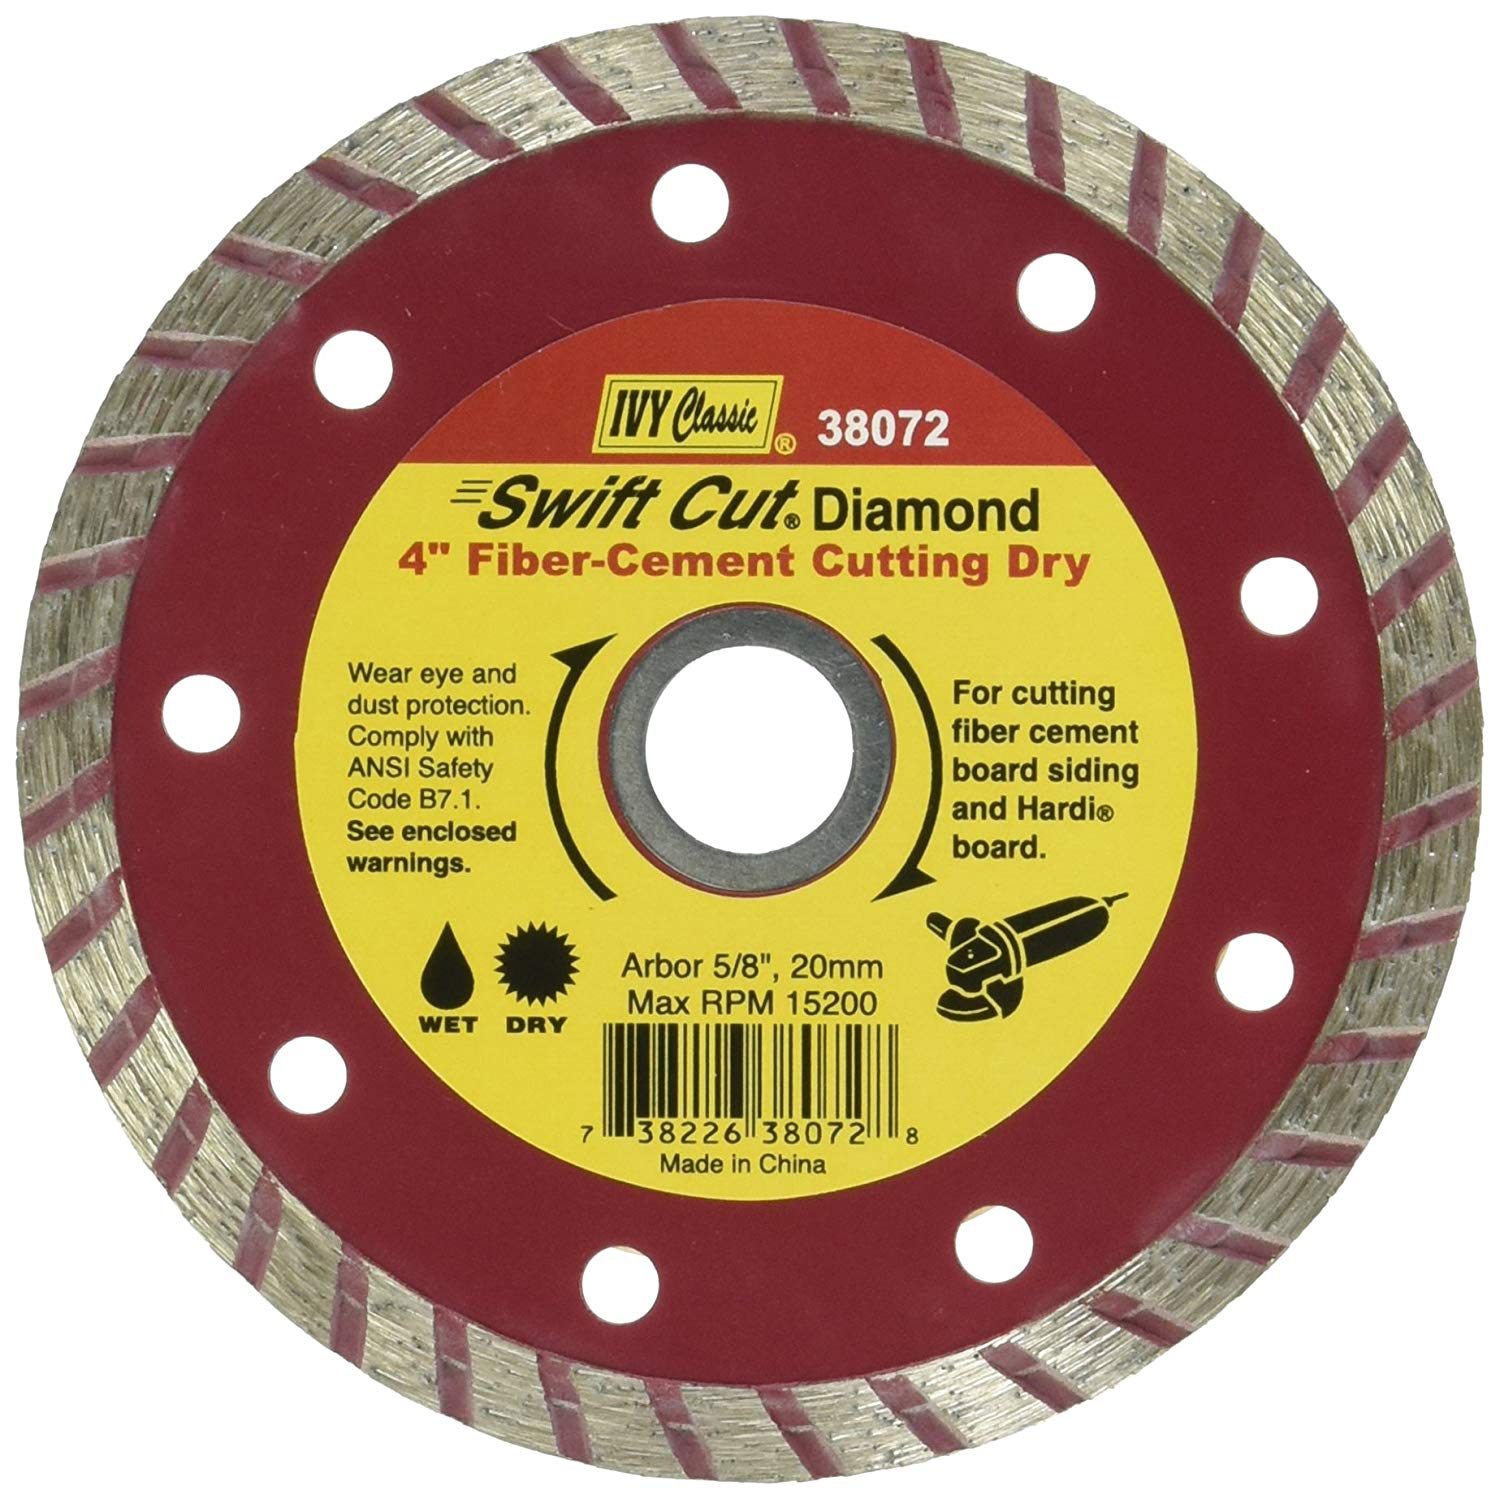 IVY Classic 38072 Swift Cut 4-1/2-Inch Dry and Wet Fiber-Cement Continuous Rim Diamond Blade with 7/8-5/8-Inch Arbor, 1/Card